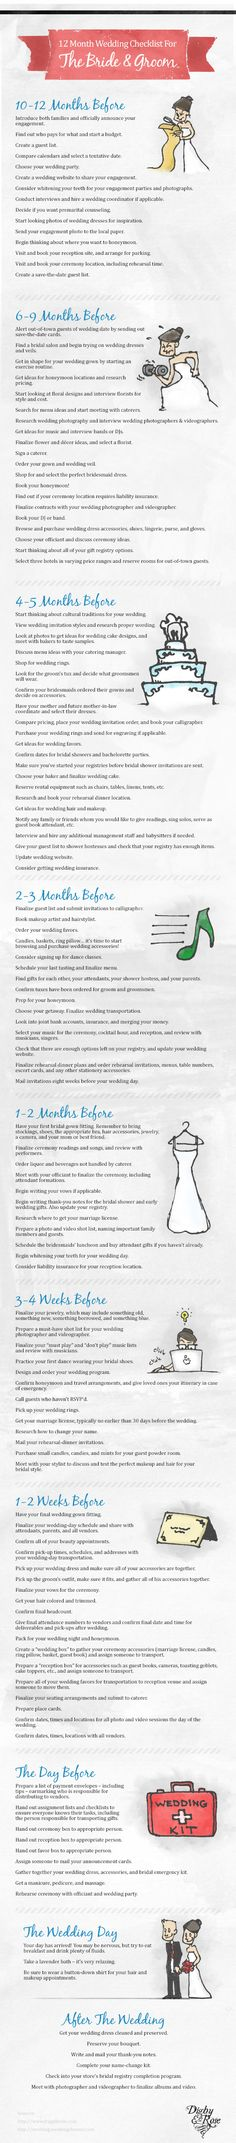 12 Month Wedding Checklist For The Bride and Groom